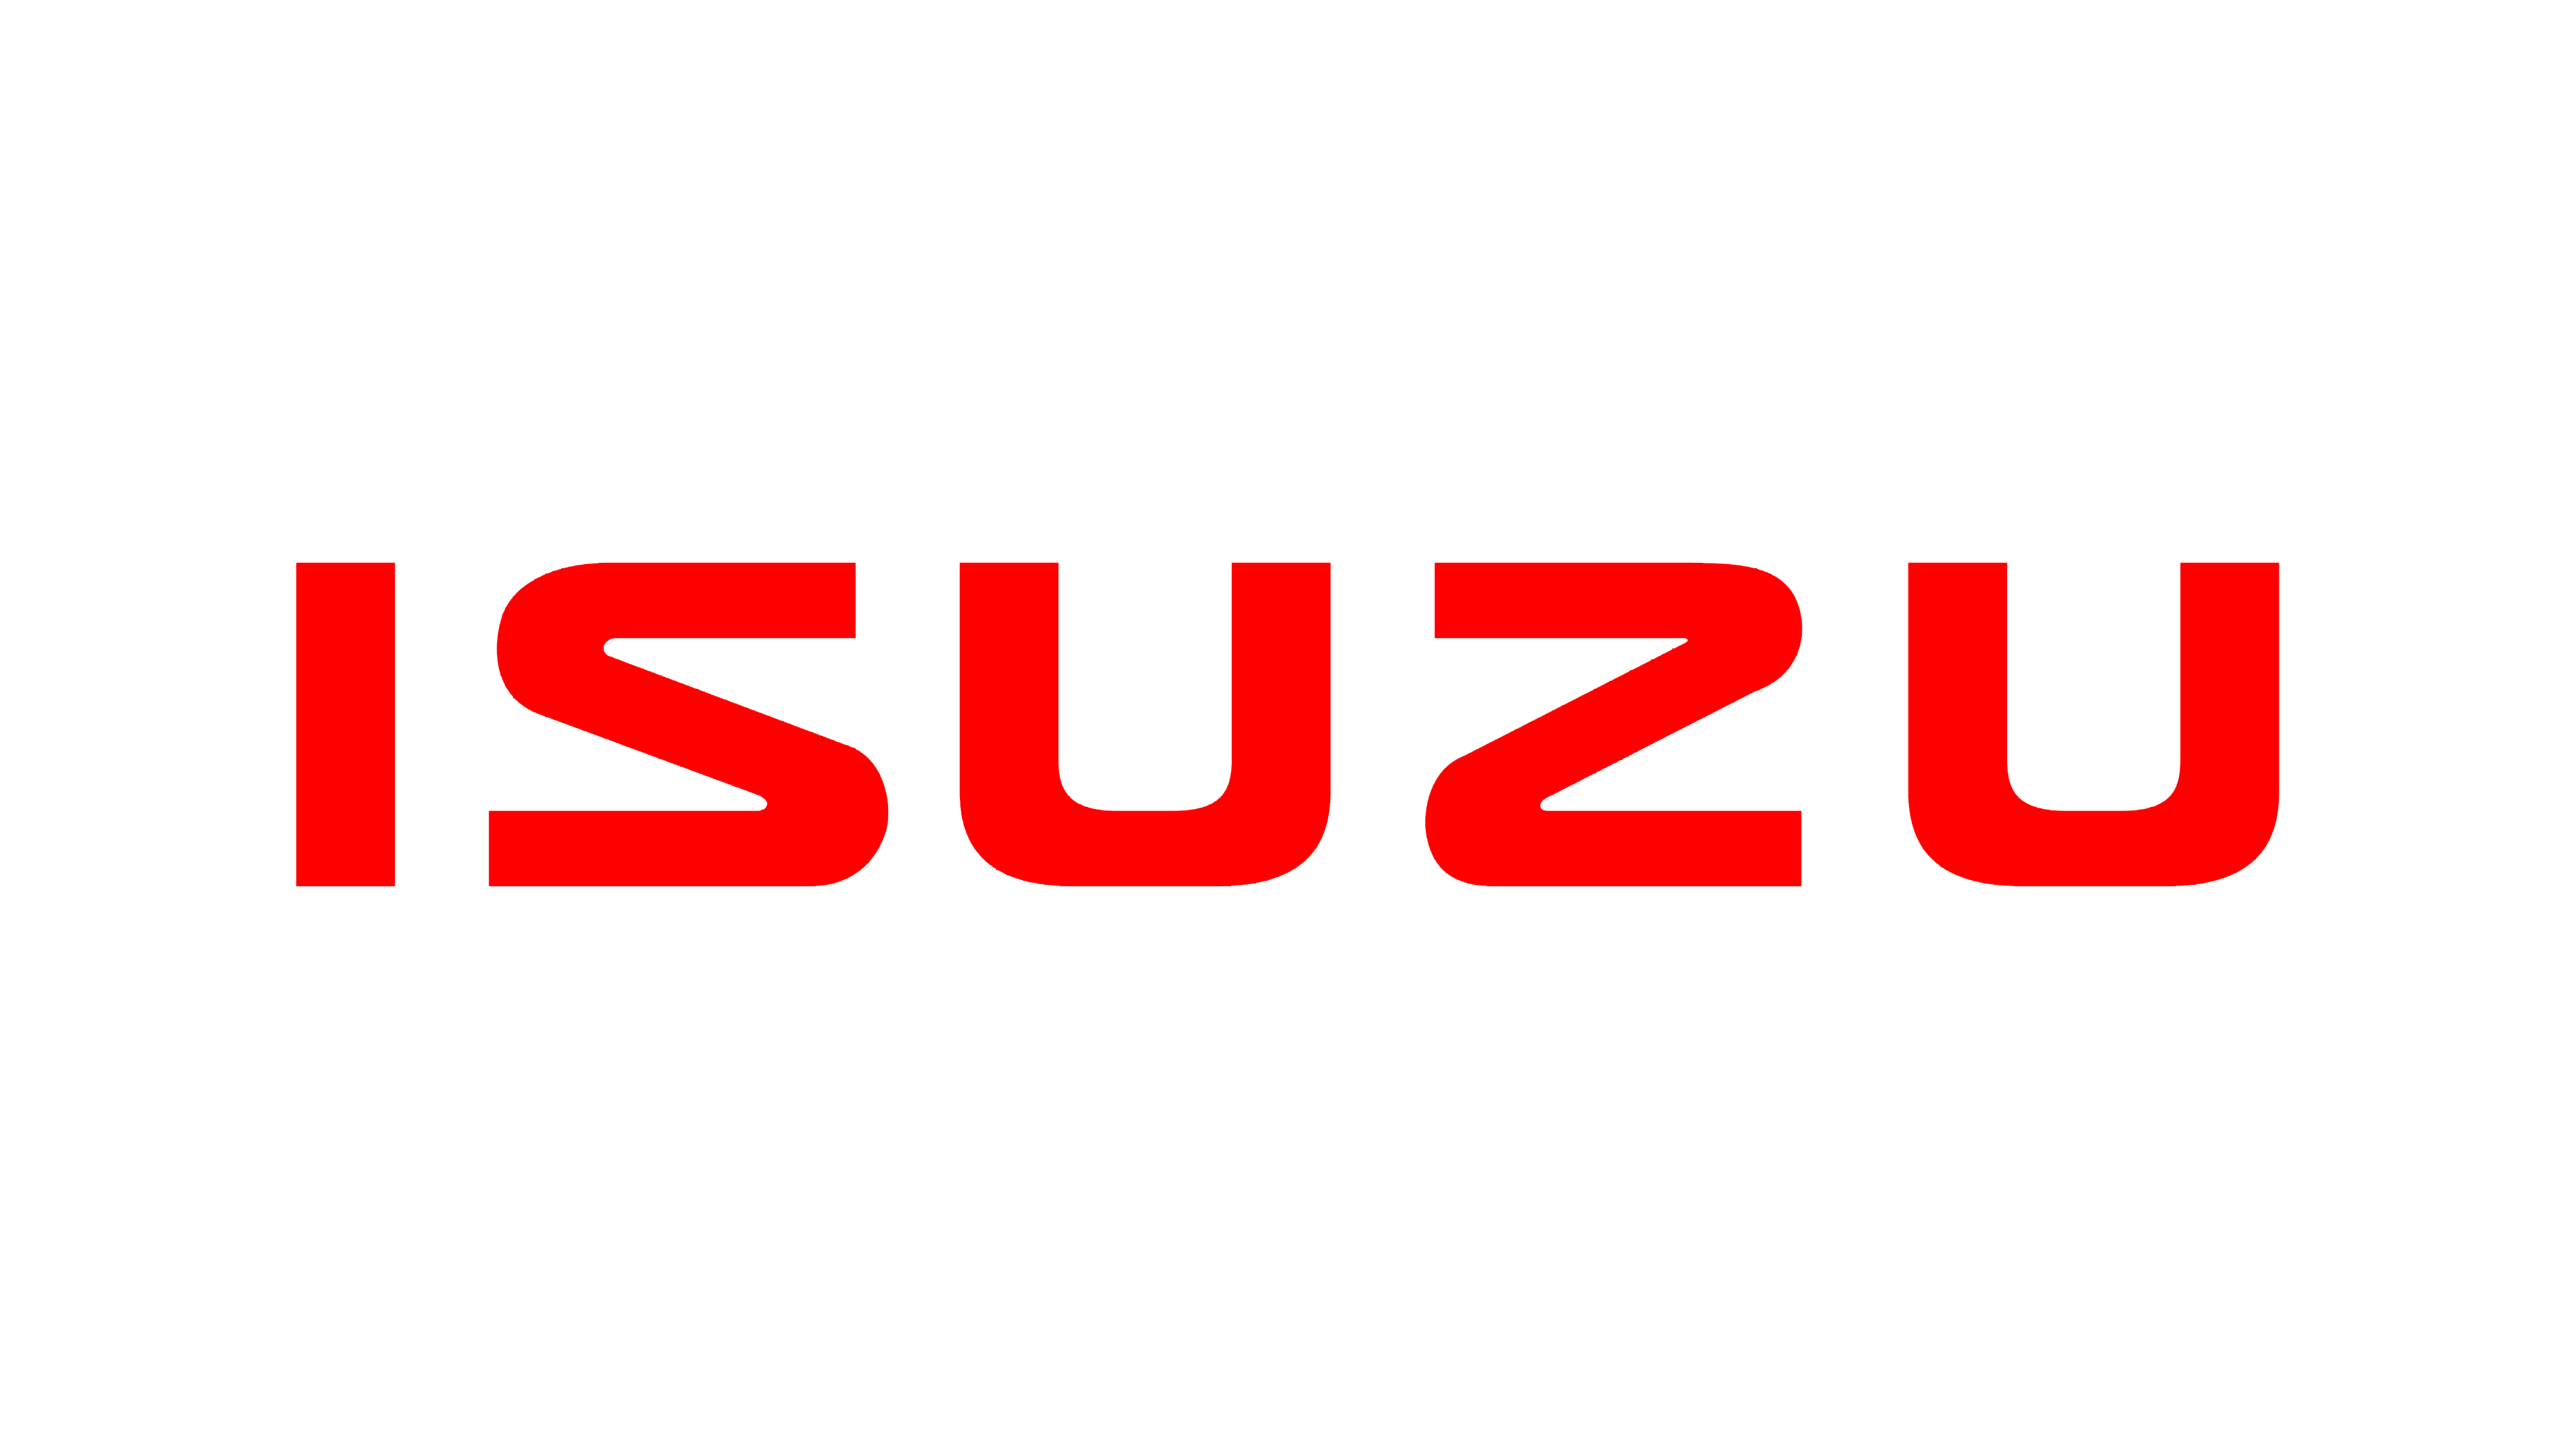 REPRODUKTORY DO ISUZU